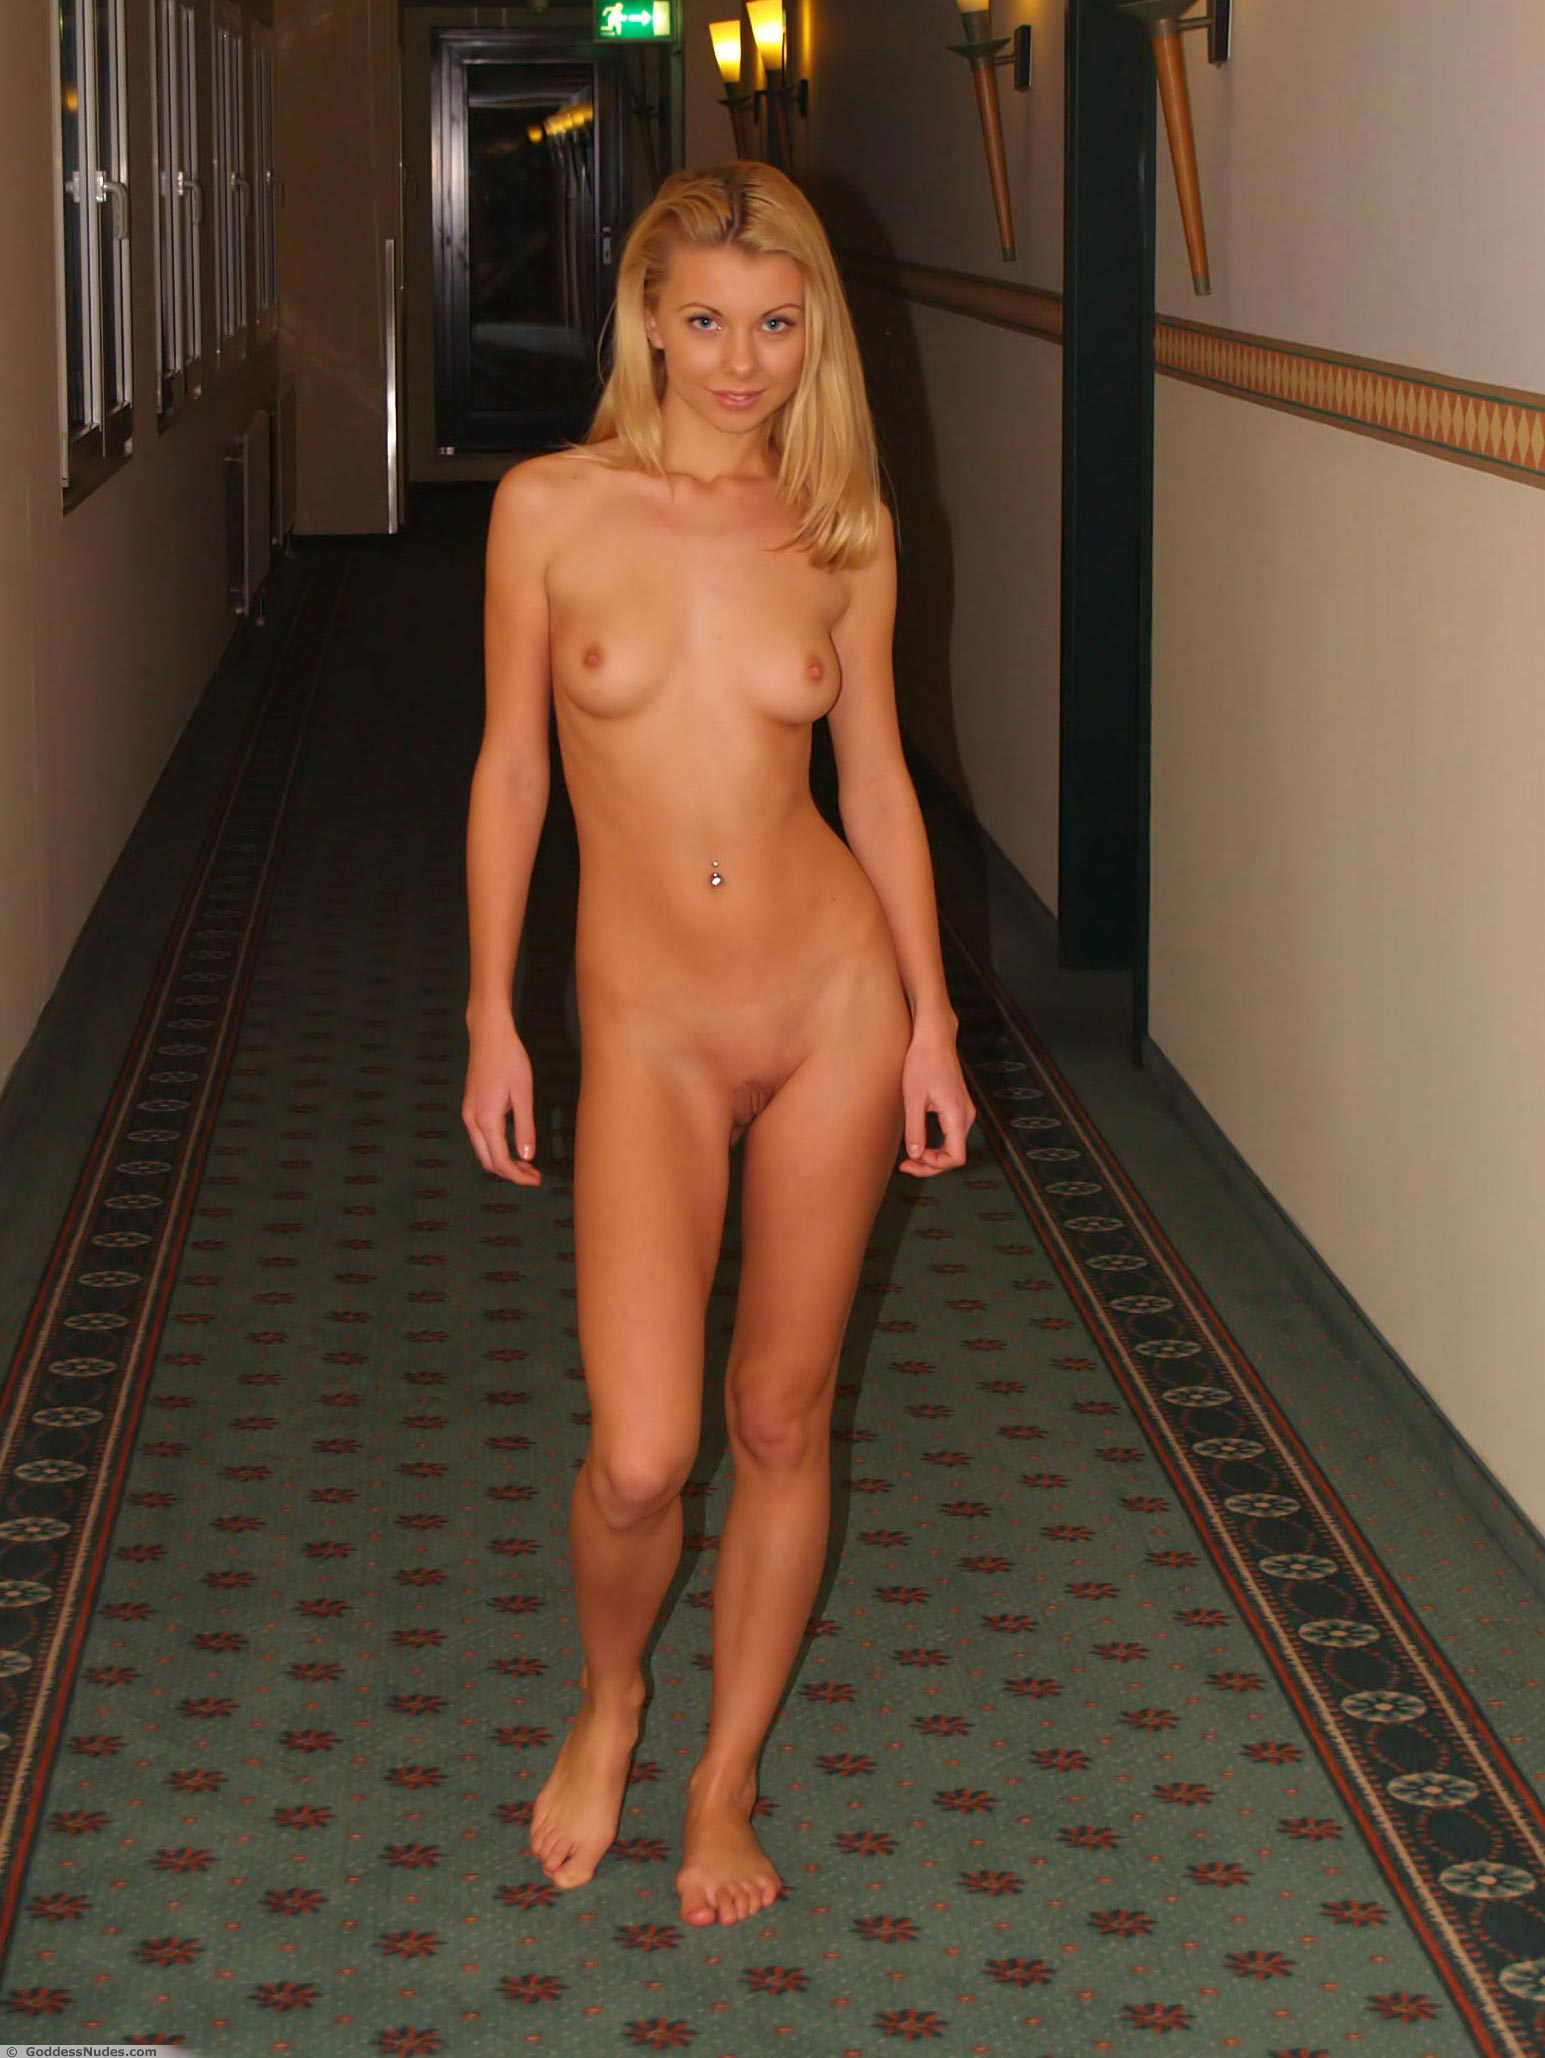 Your why model women like to be naked nude